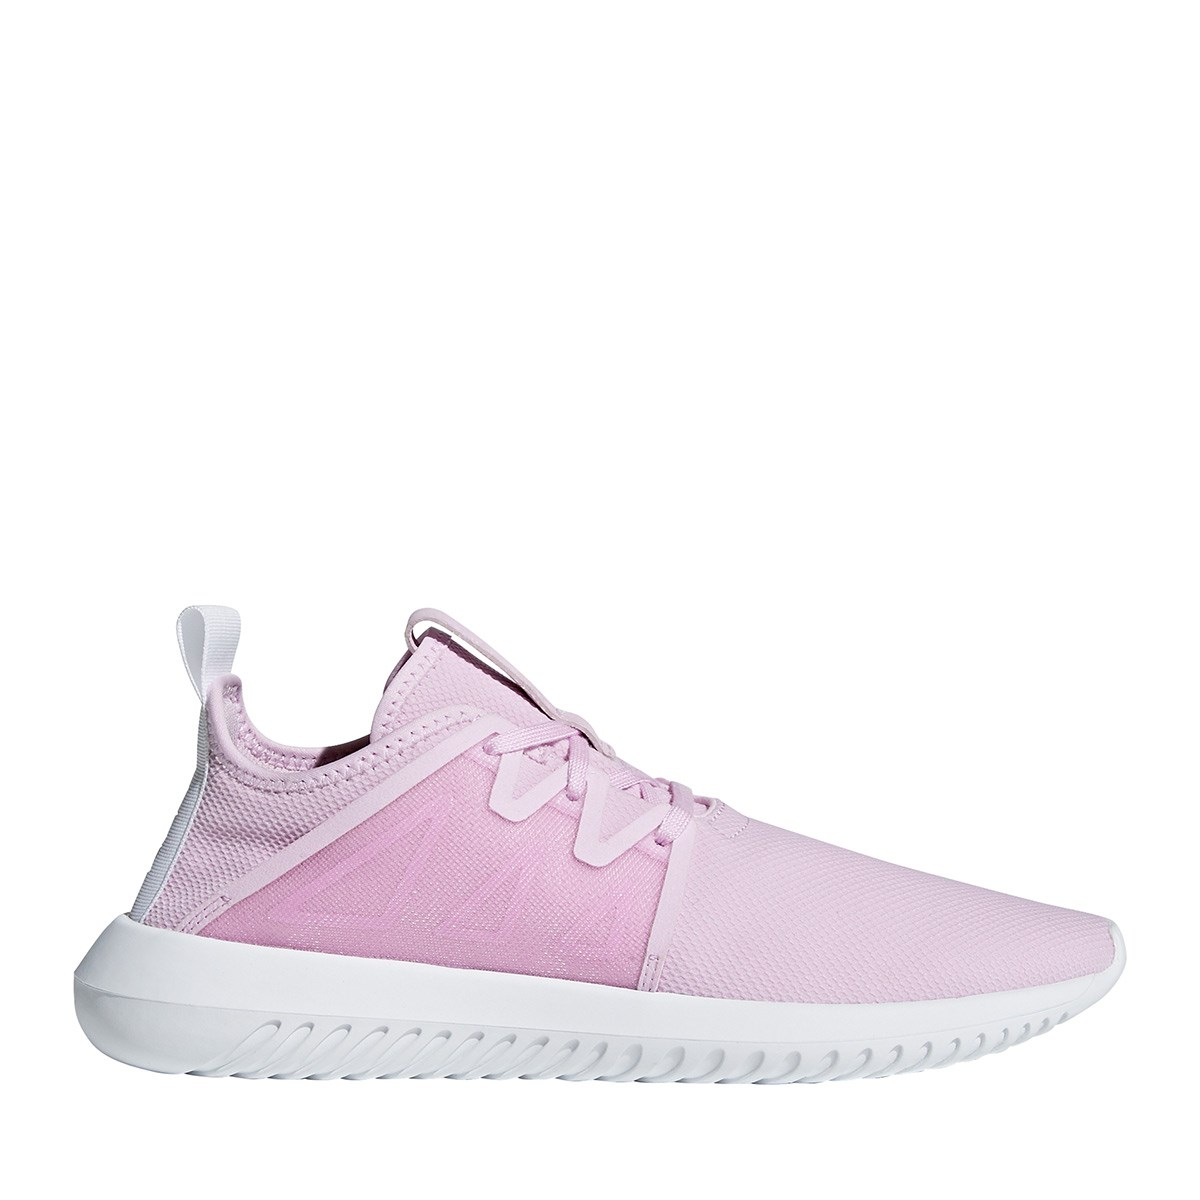 19ebdf9570a0 Women s Tubular Viral 2.0 Pink. Previous. default view ...